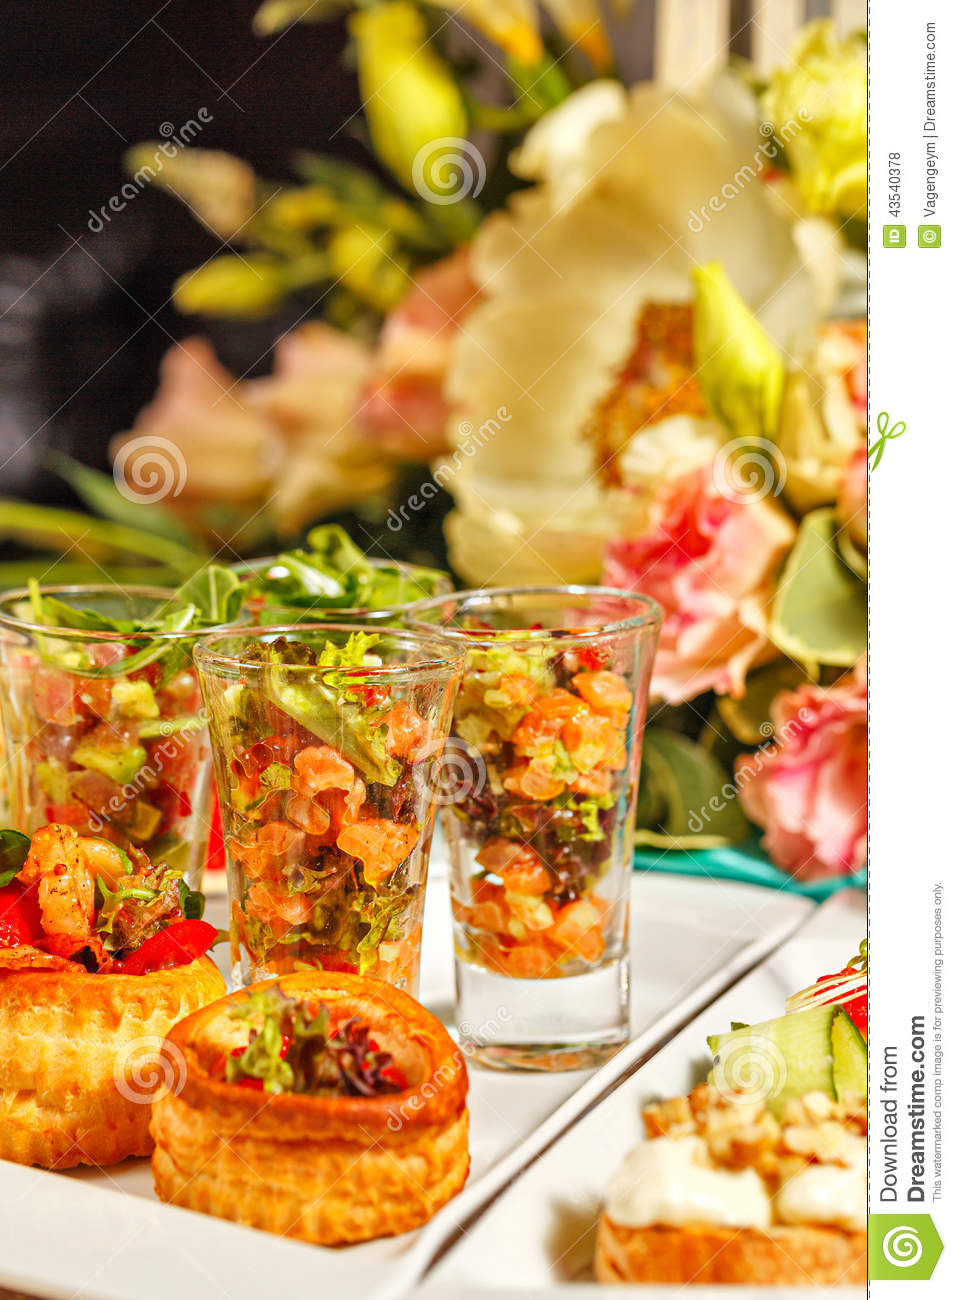 Restaurant food canapes appetizers stock photo image for Canape restaurant